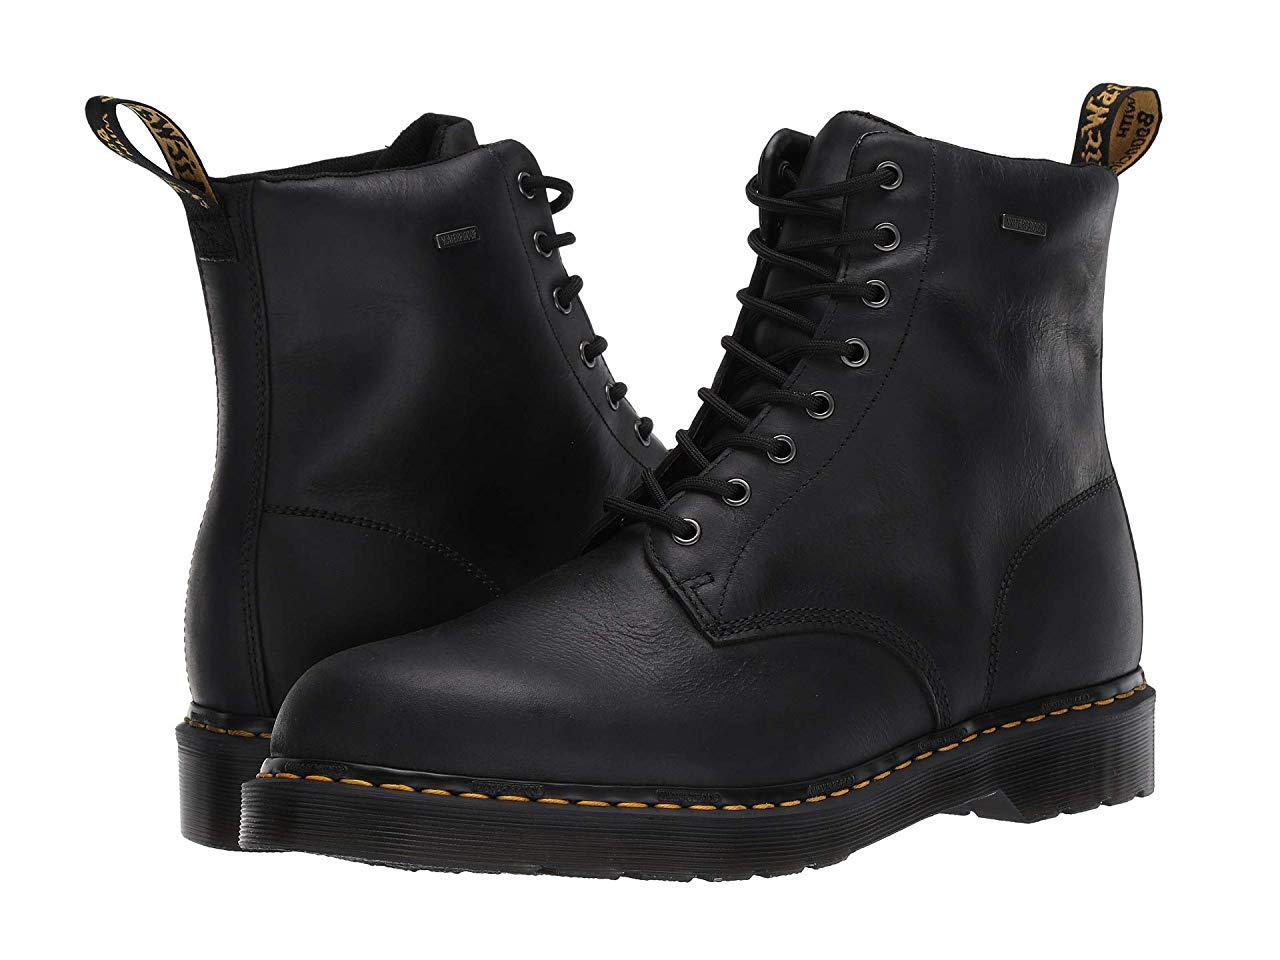 Ботинки/Сапоги Dr. Martens Waterproof 1460 Black Republic Waterproof